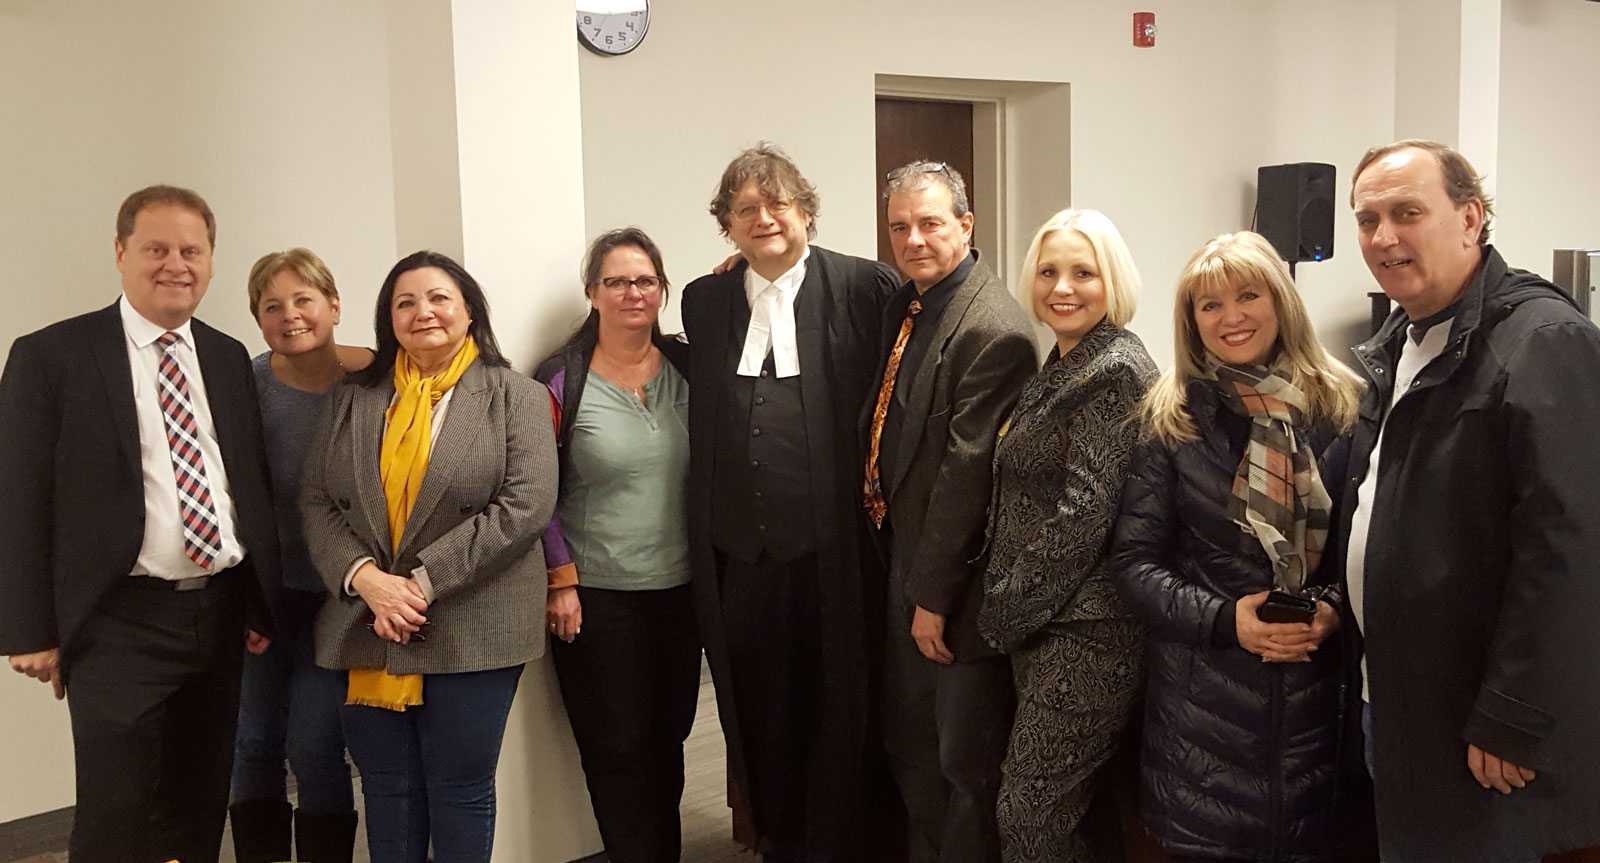 Photo taken after the Cherrier v. Canada case